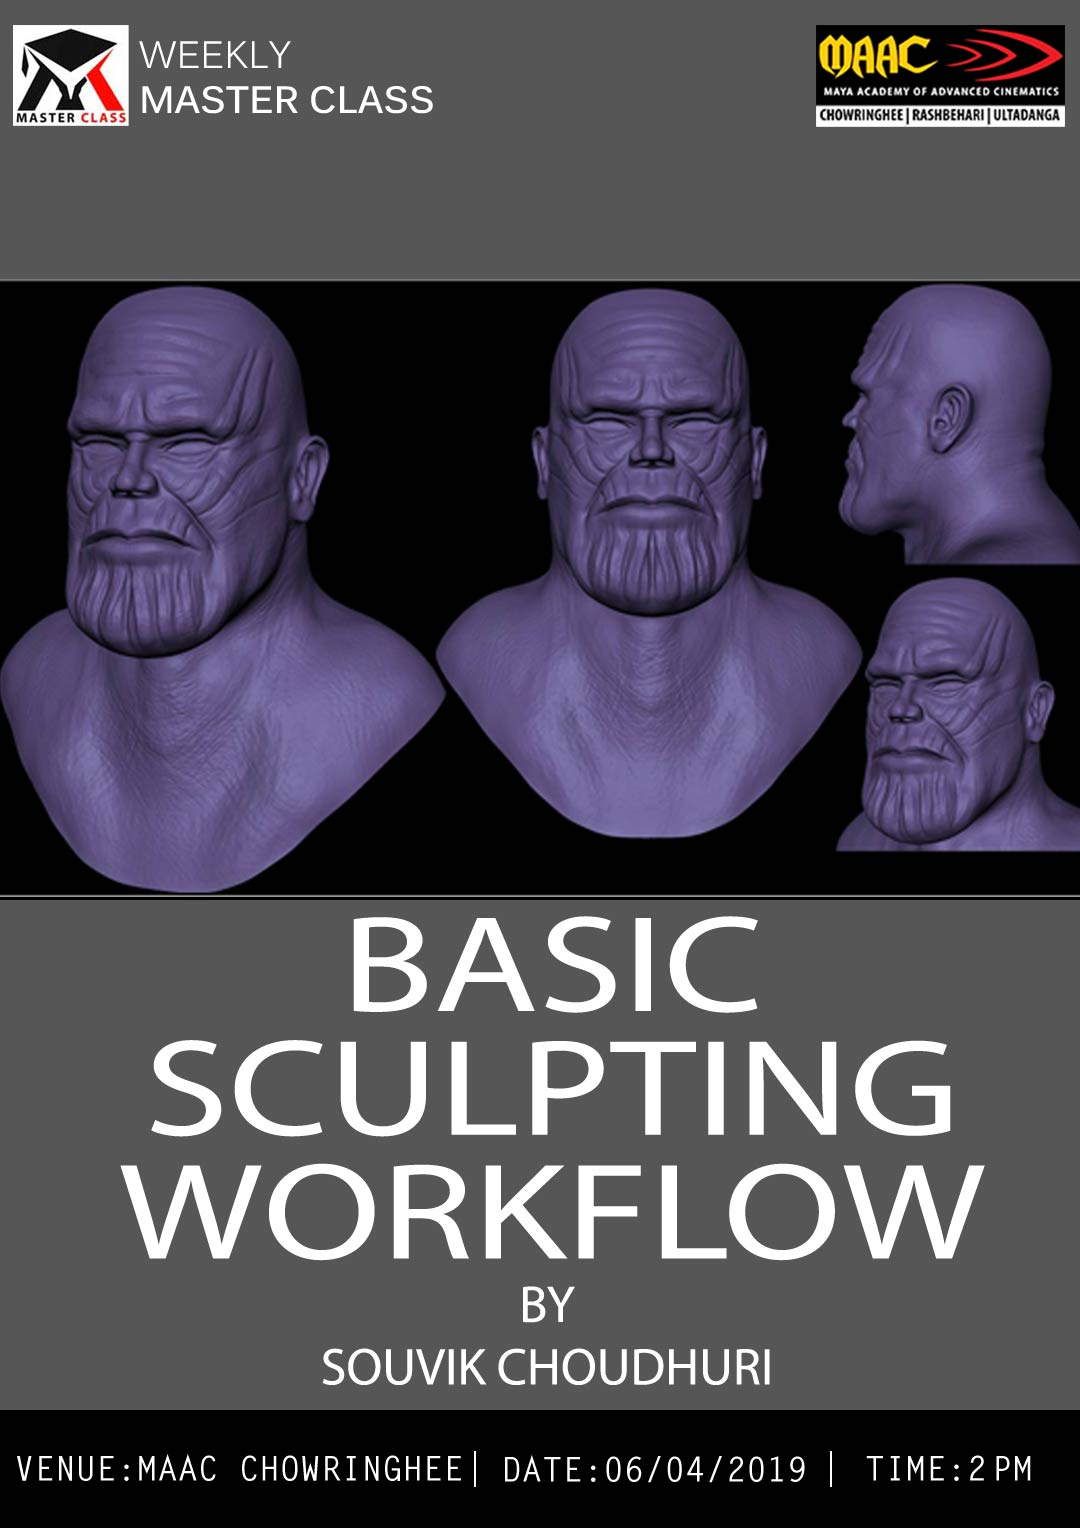 Weekly Master Class on Basic Sculpting Workflow